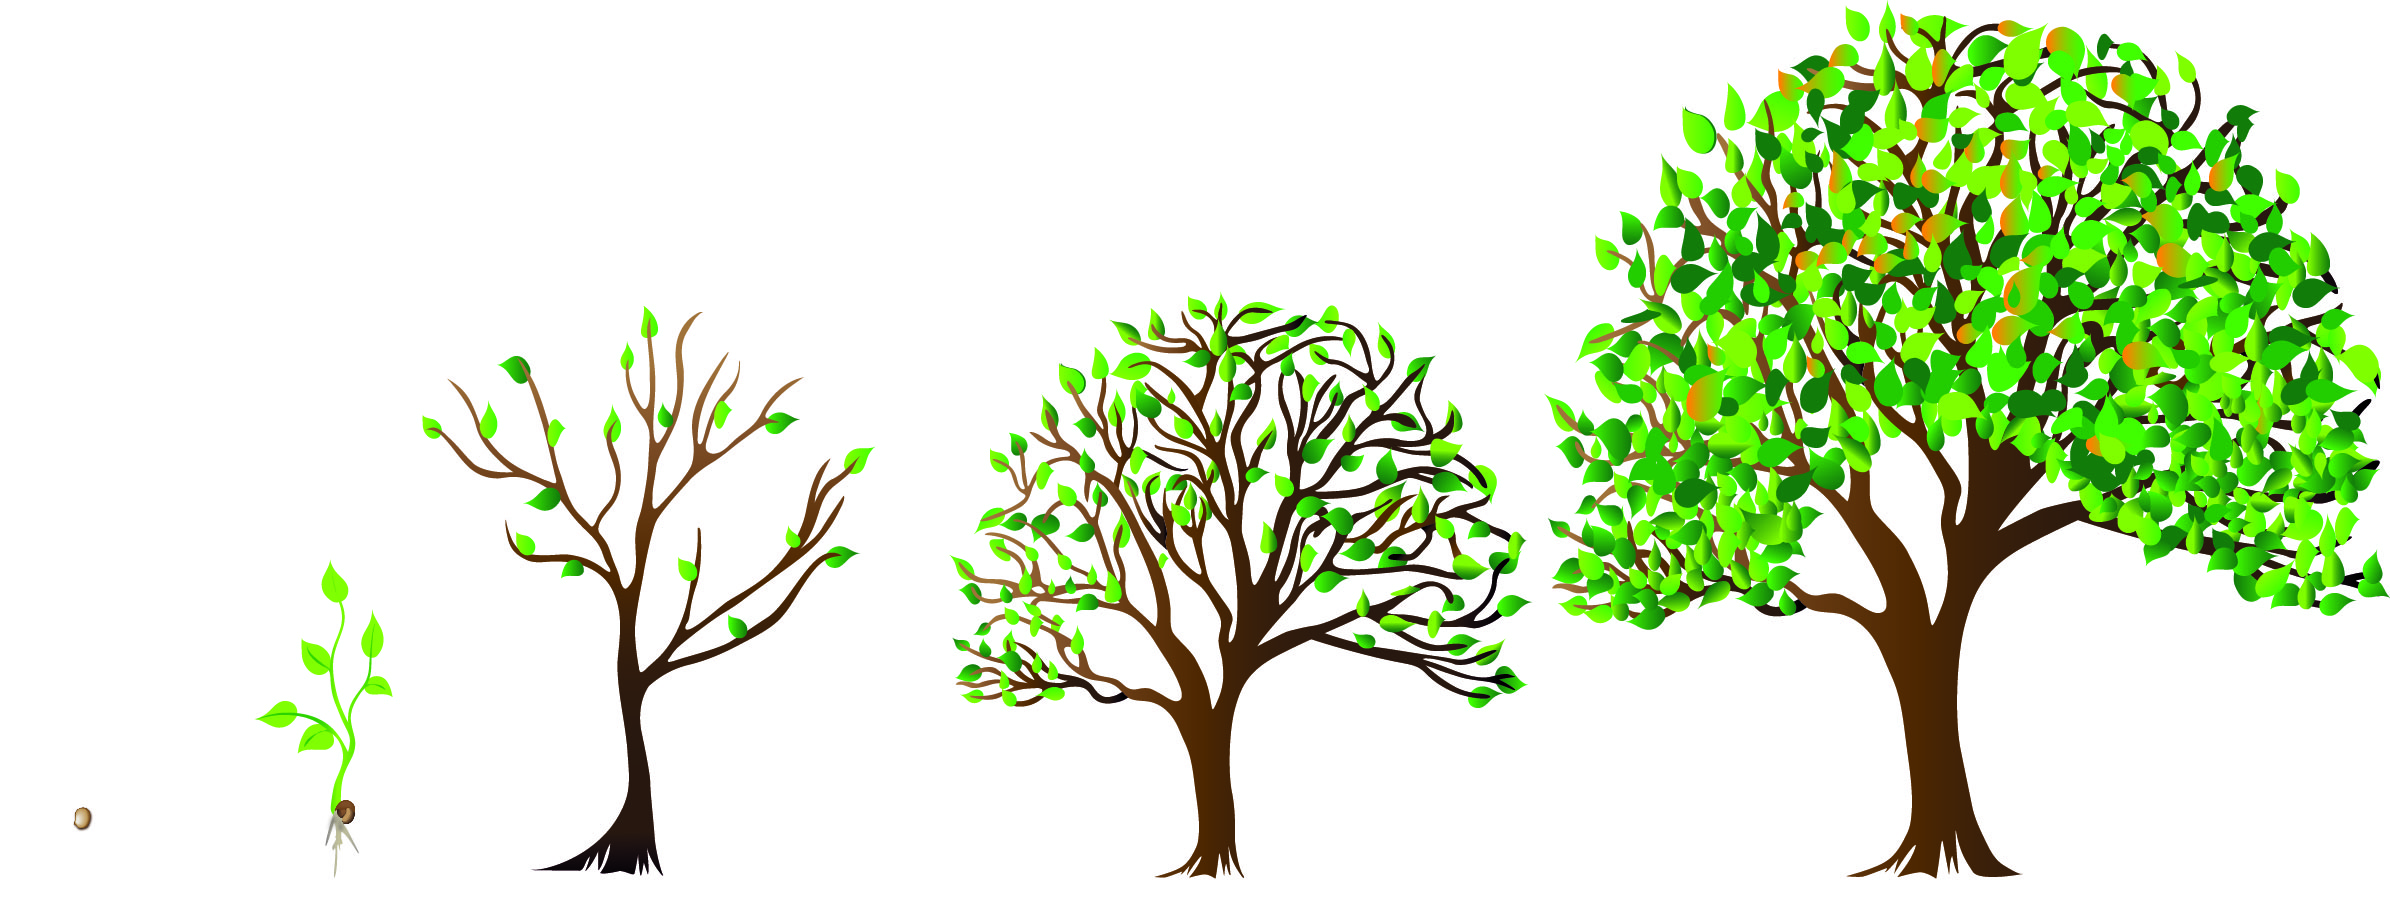 progression of trees